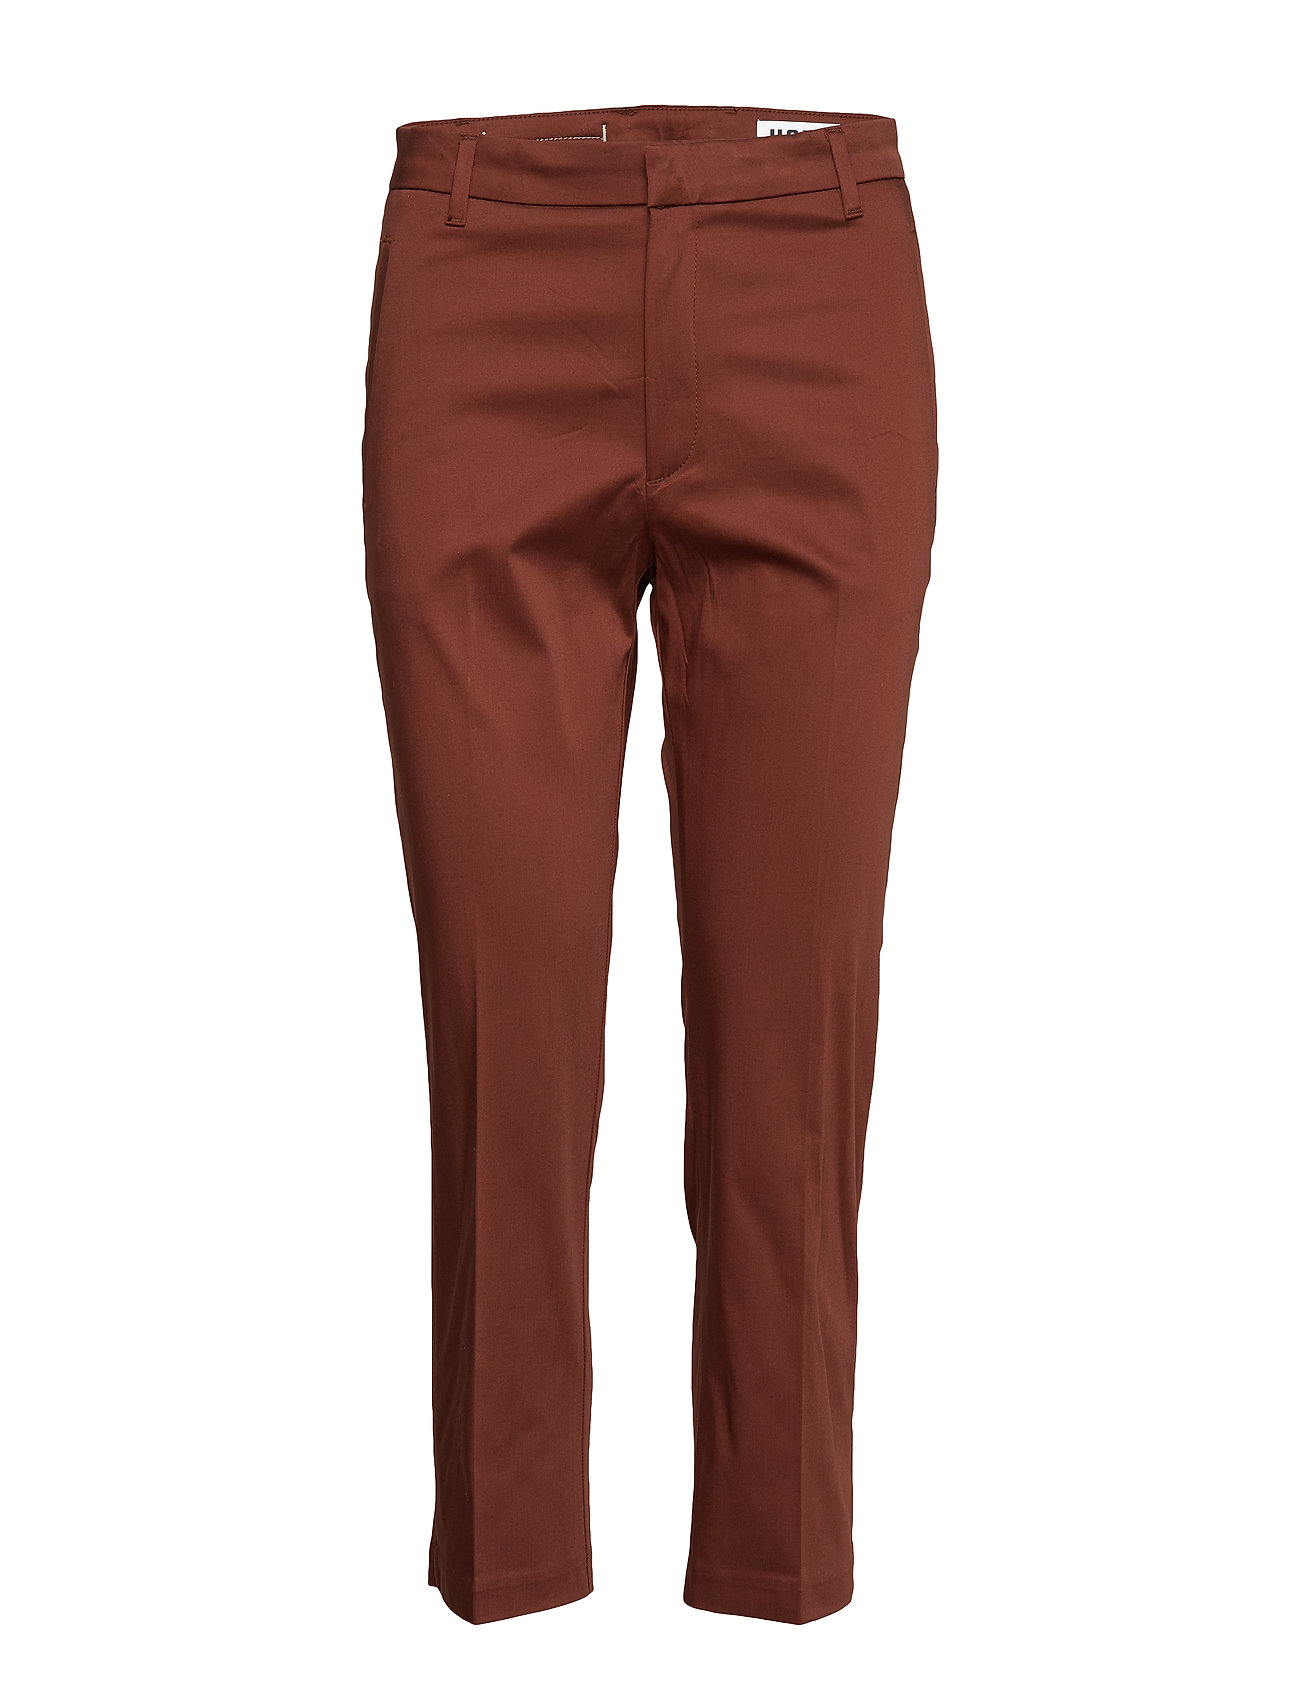 Hope Lobby Trousers - GOLDEN BROWN